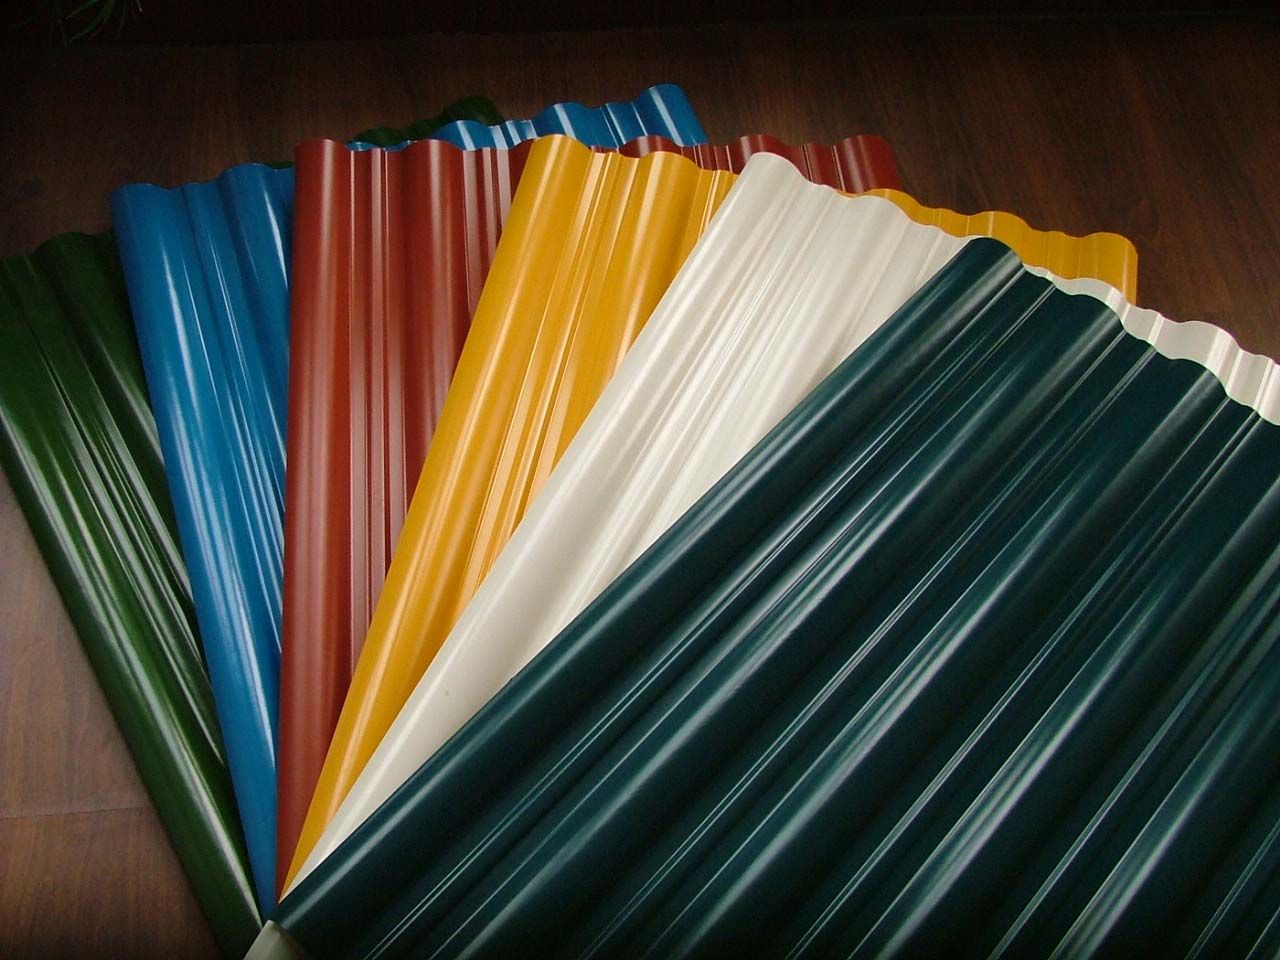 Corrugated Metal Roofing Sheets Wickes Roofing Sheets Corrugated Metal Roof Corrugated Roofing